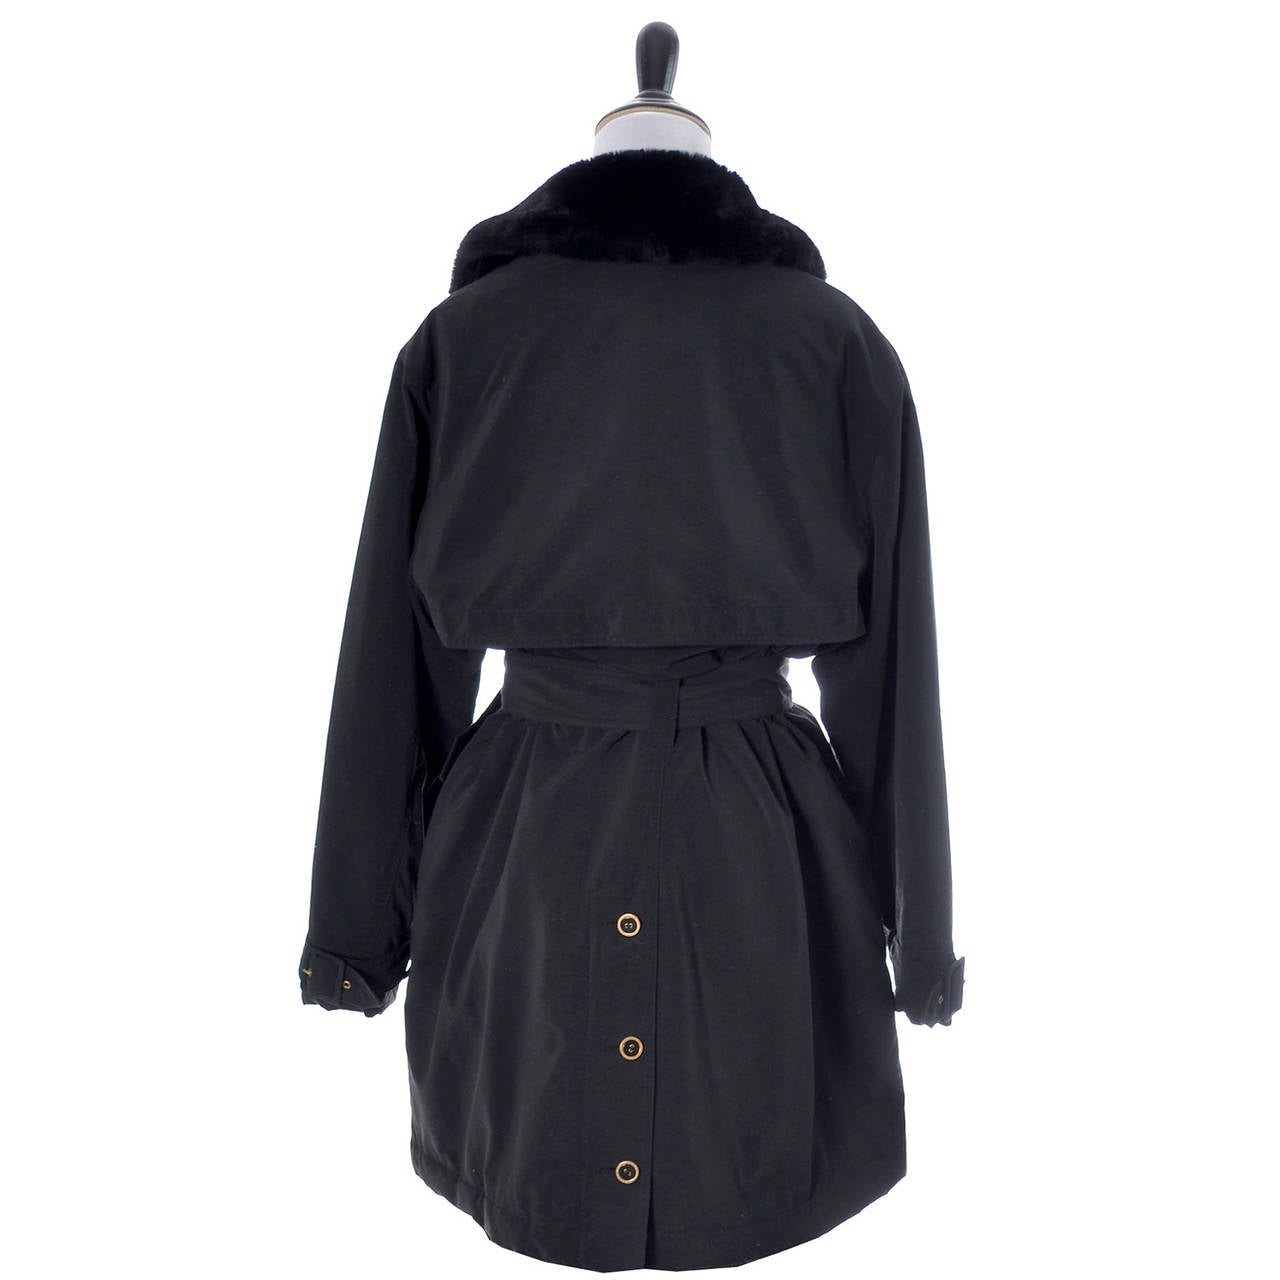 This is a fab vintage soft black Sonia Rykiel designer raincoat with its original belt and a great faux fur collar.  This trench coat style double breasted jacket has black quilted lining, Sonia Rykiel logo buttons and is in excellent condition. I